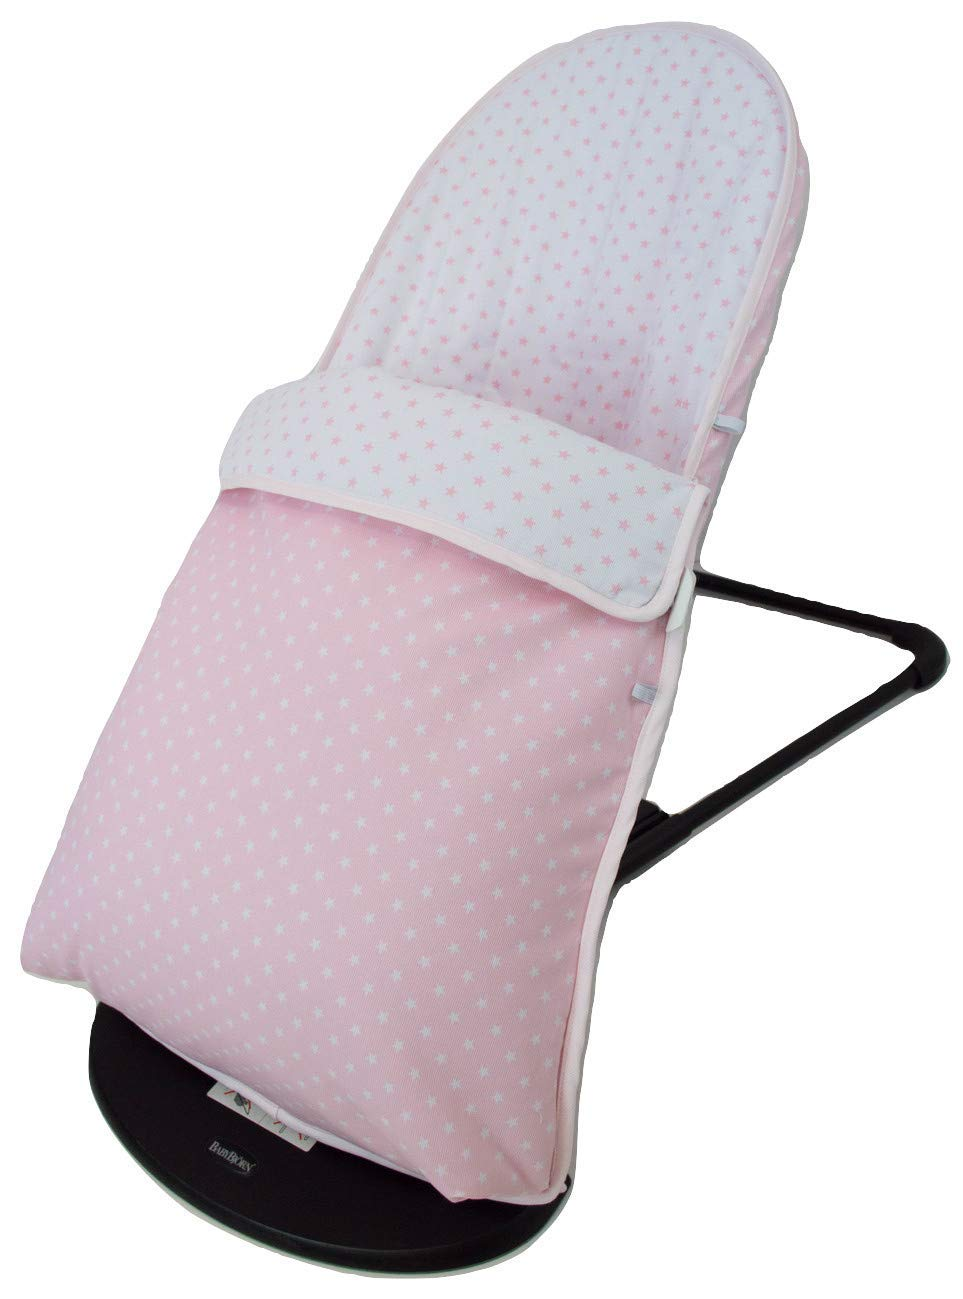 Baby Bouncer Cover and Footmuff for BabyBjörn Balance and Soft Personalized with Embroidered Name. Several Models Available (Stars Pink) Borda y más Upholstery for totally replacing the original Babybjörn baby bouncer upholstery. It consists of FOOTMUFF and COVER. Compatible with Babybjörn Balance and Babybjörn Balance Soft. Made in natural soft and breathable pique, without chemical substances perfect for your baby as it reduces your baby's skin irritation or reaction. With our footmuff changeable into cover you will keep your baby war in the coldest days at the same time you provide your baby bouncer a new image. You only need to fit together the cover and the upholstery by the zippers and velcro system. The footmuff adjustable to 3 different positions. You won't need to worry about the blanket again; your baby will be able to play and sleep without being cold. Design: Made in pink pique with white stars combined with white pique and pink stars. 100% made in Spain with the best finishes and qualities. It can be easily removed and wash in the washing machine, programmes lower than 30 degrees and using organic or neutral soap. 3